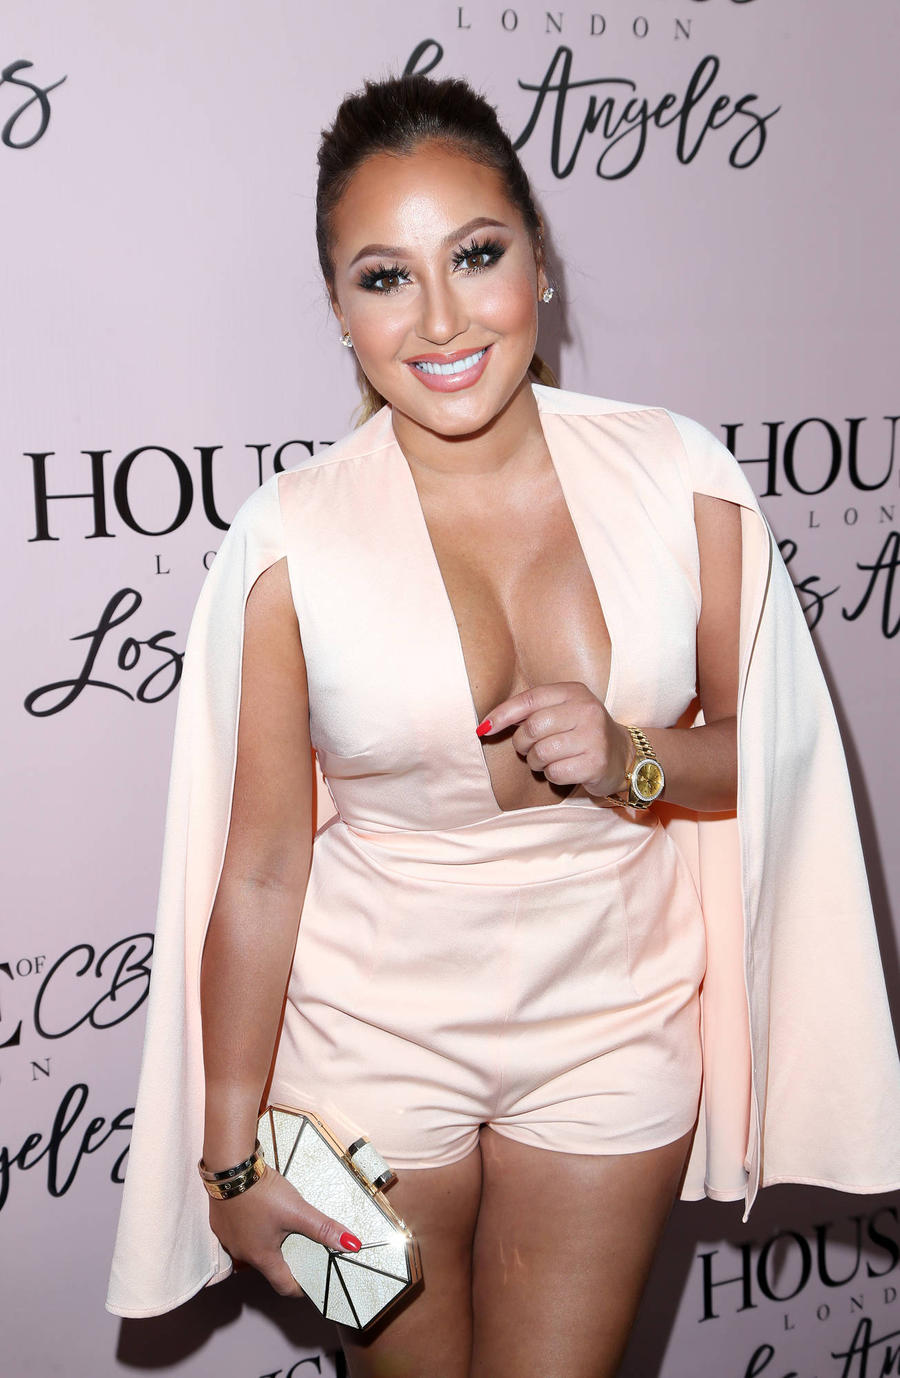 Adrienne Bailon's Fiance Will Never See Her In The Cheetah Girls